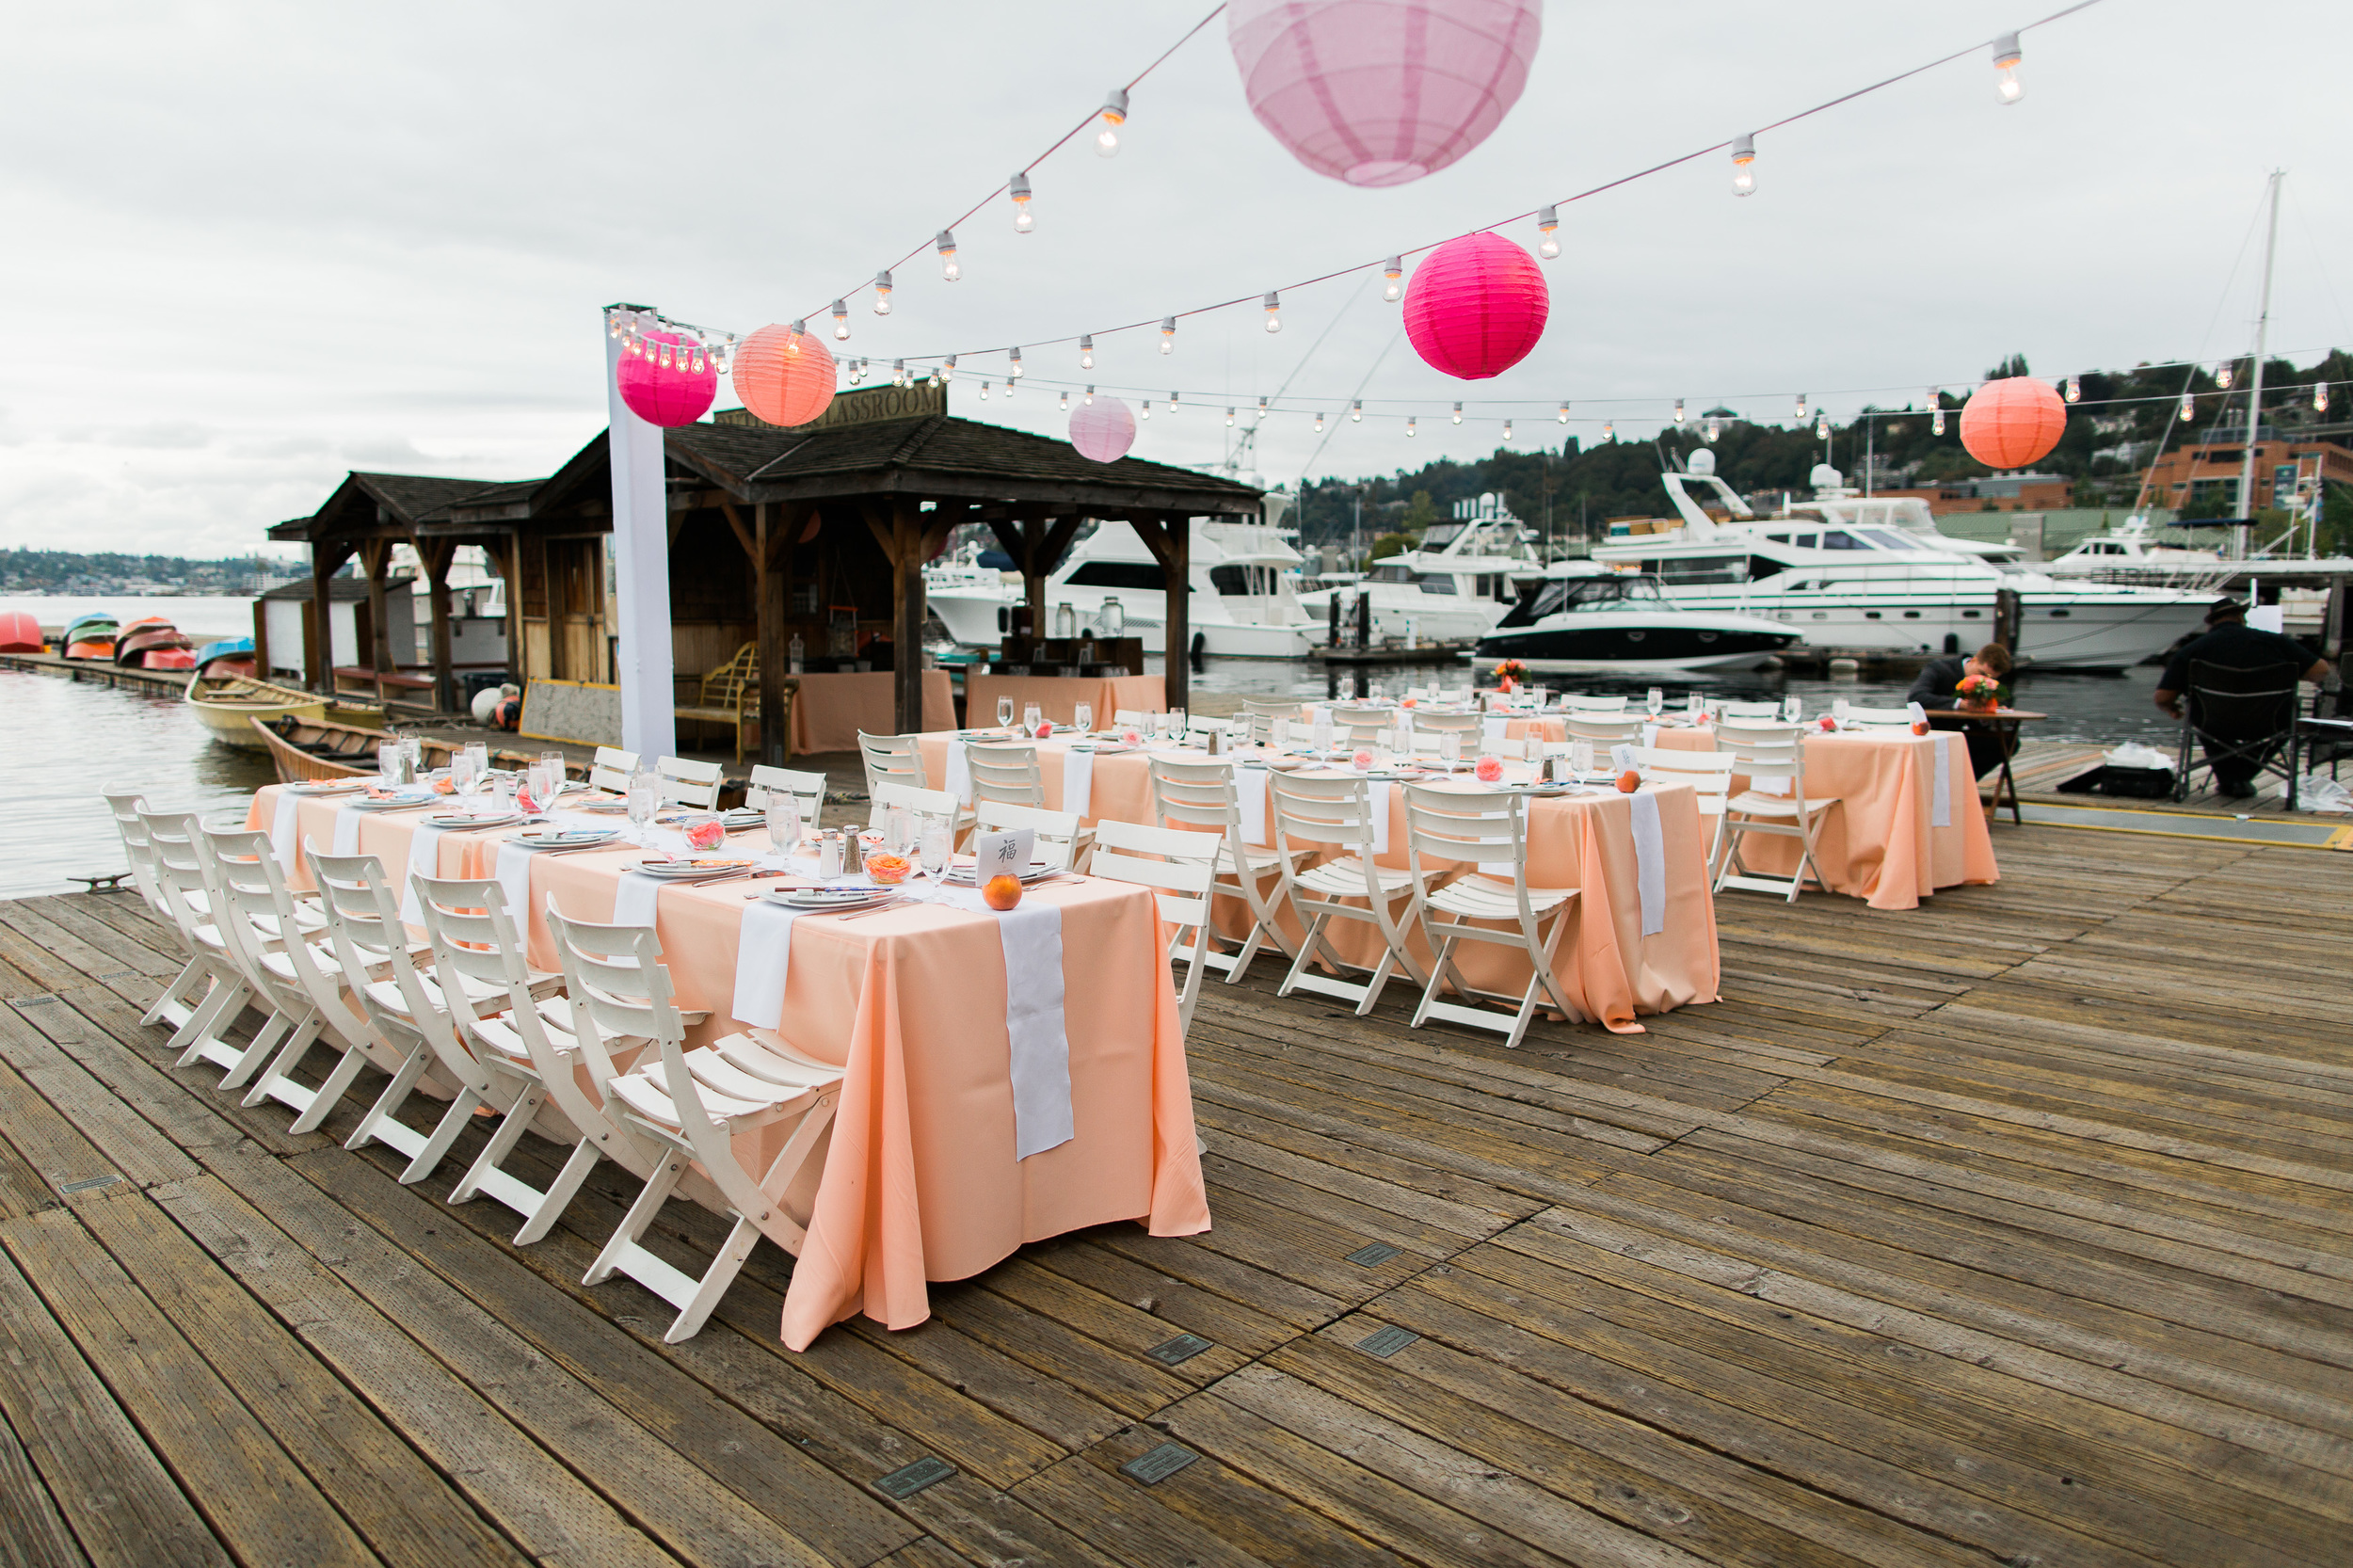 Peach Wedding Tables   Pink and Peach Wedding   Center for Wooden Boats   Chinese Lanterns   Asgari Photography   Seattle Wedding Planner   Chinese Wedding Planner